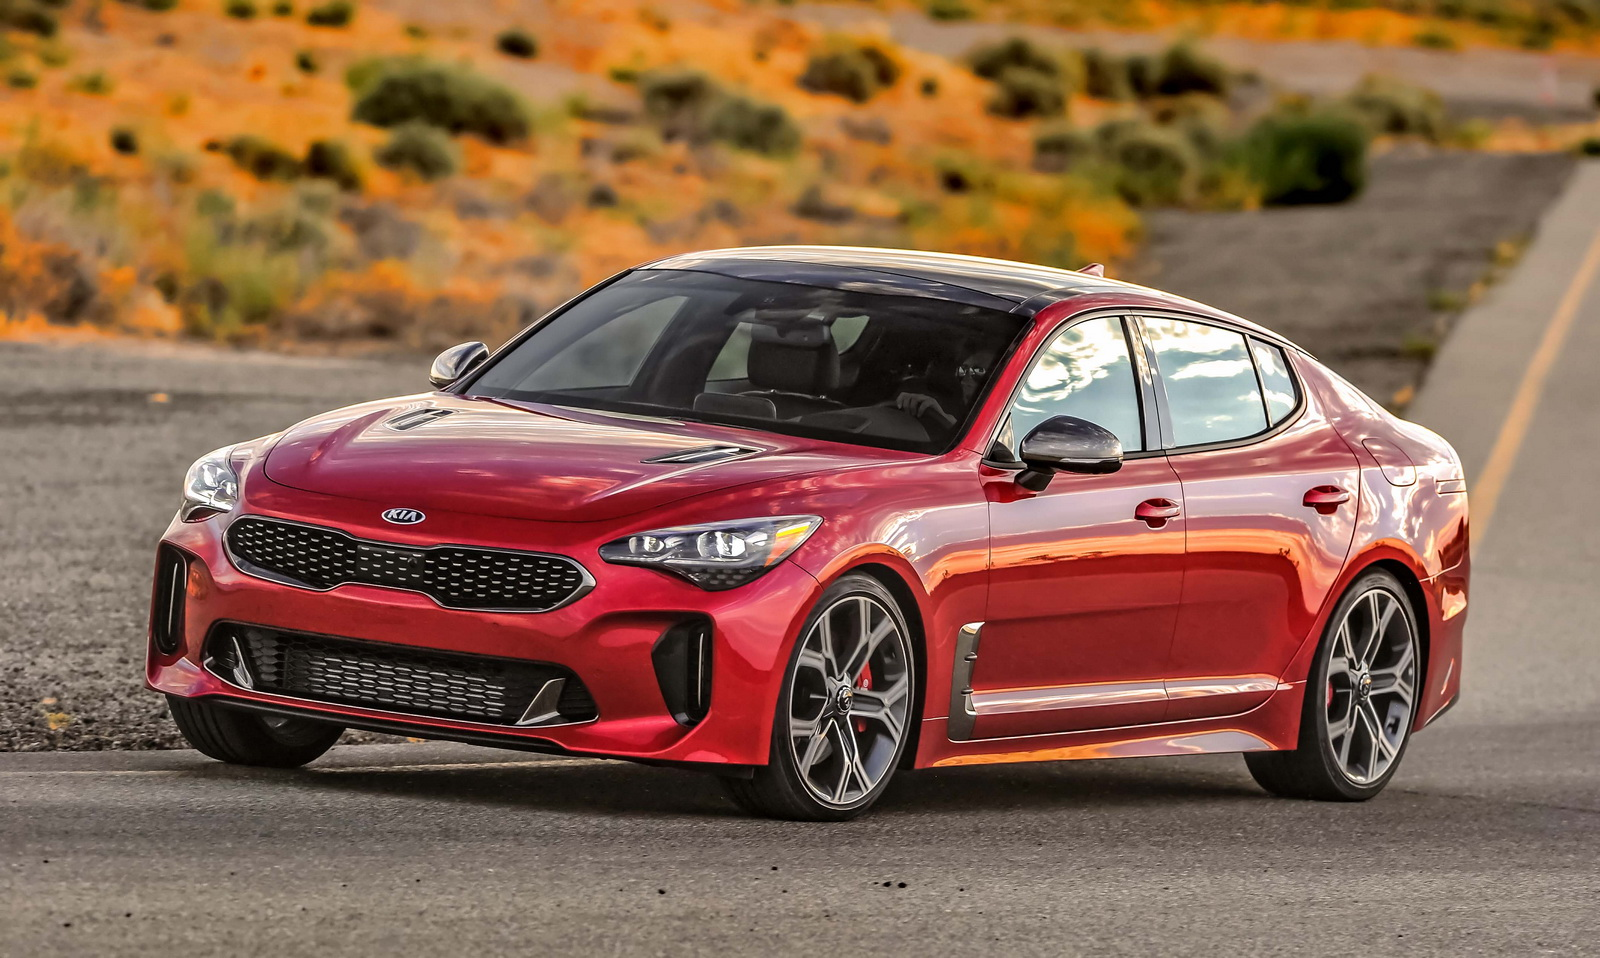 Kia Ceed Engine >> 2018 Kia Stinger Lease Deals Start From $382* A Month | Carscoops